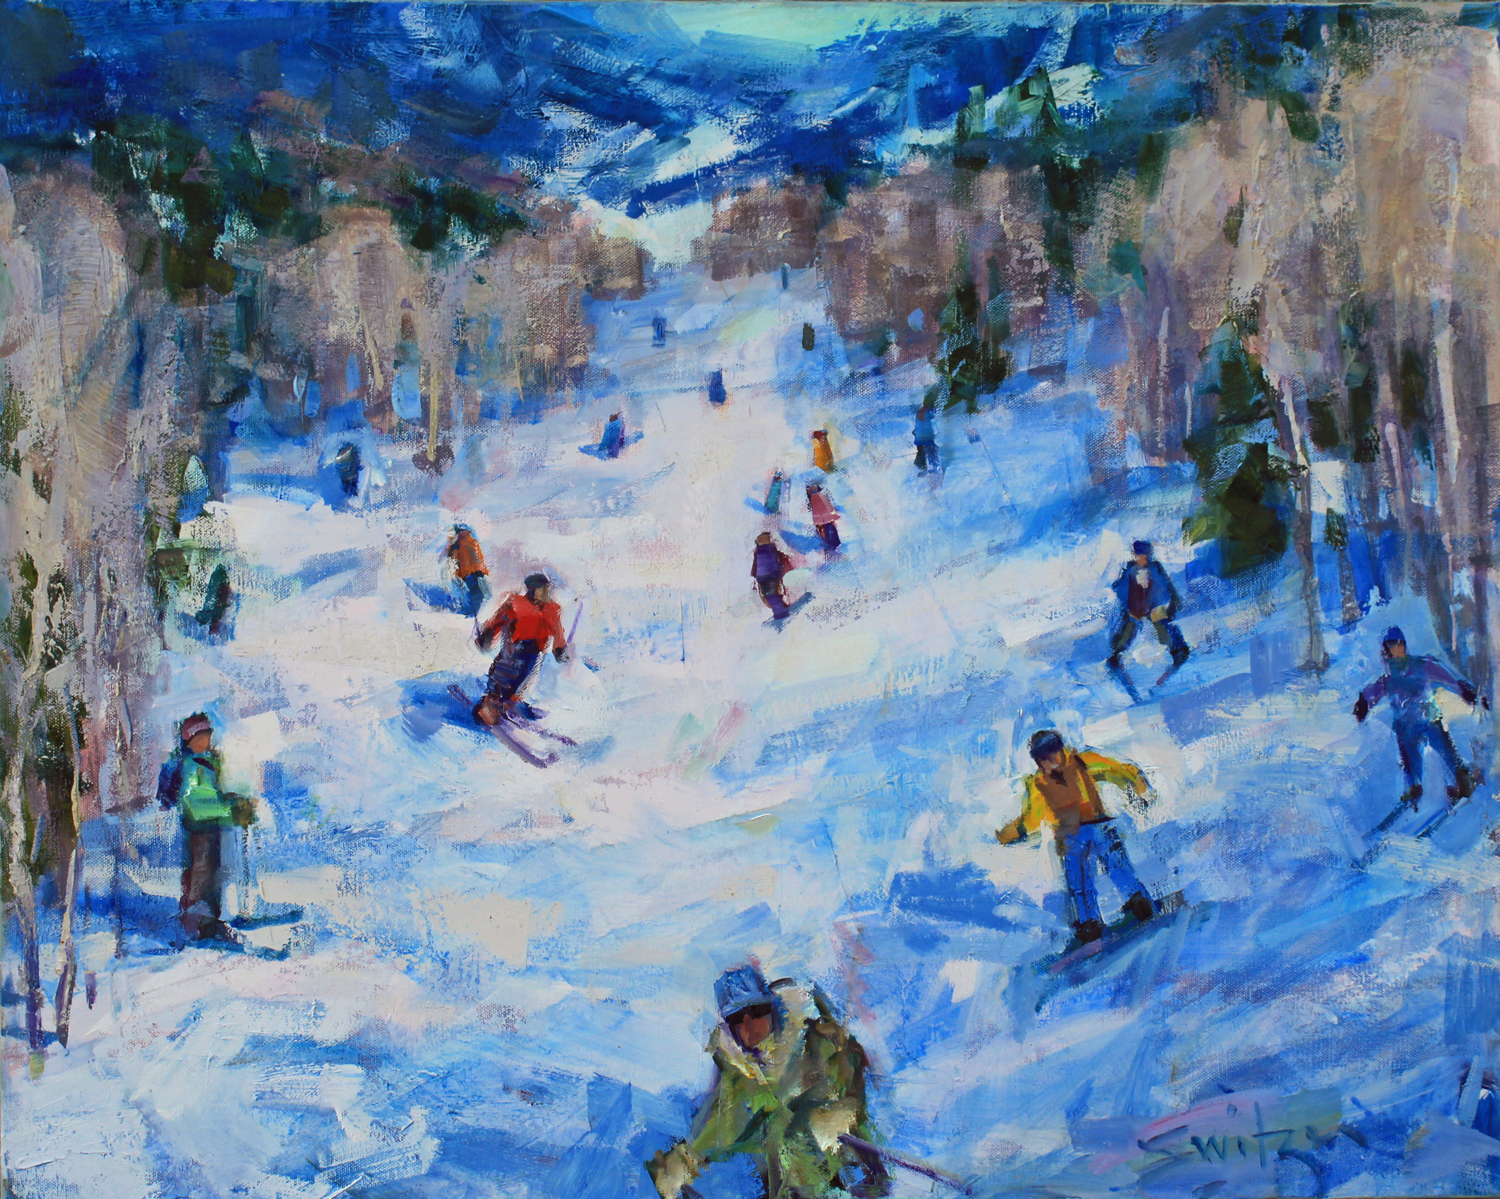 """Aspen Way"", 24x30 inches, oil on canvas"